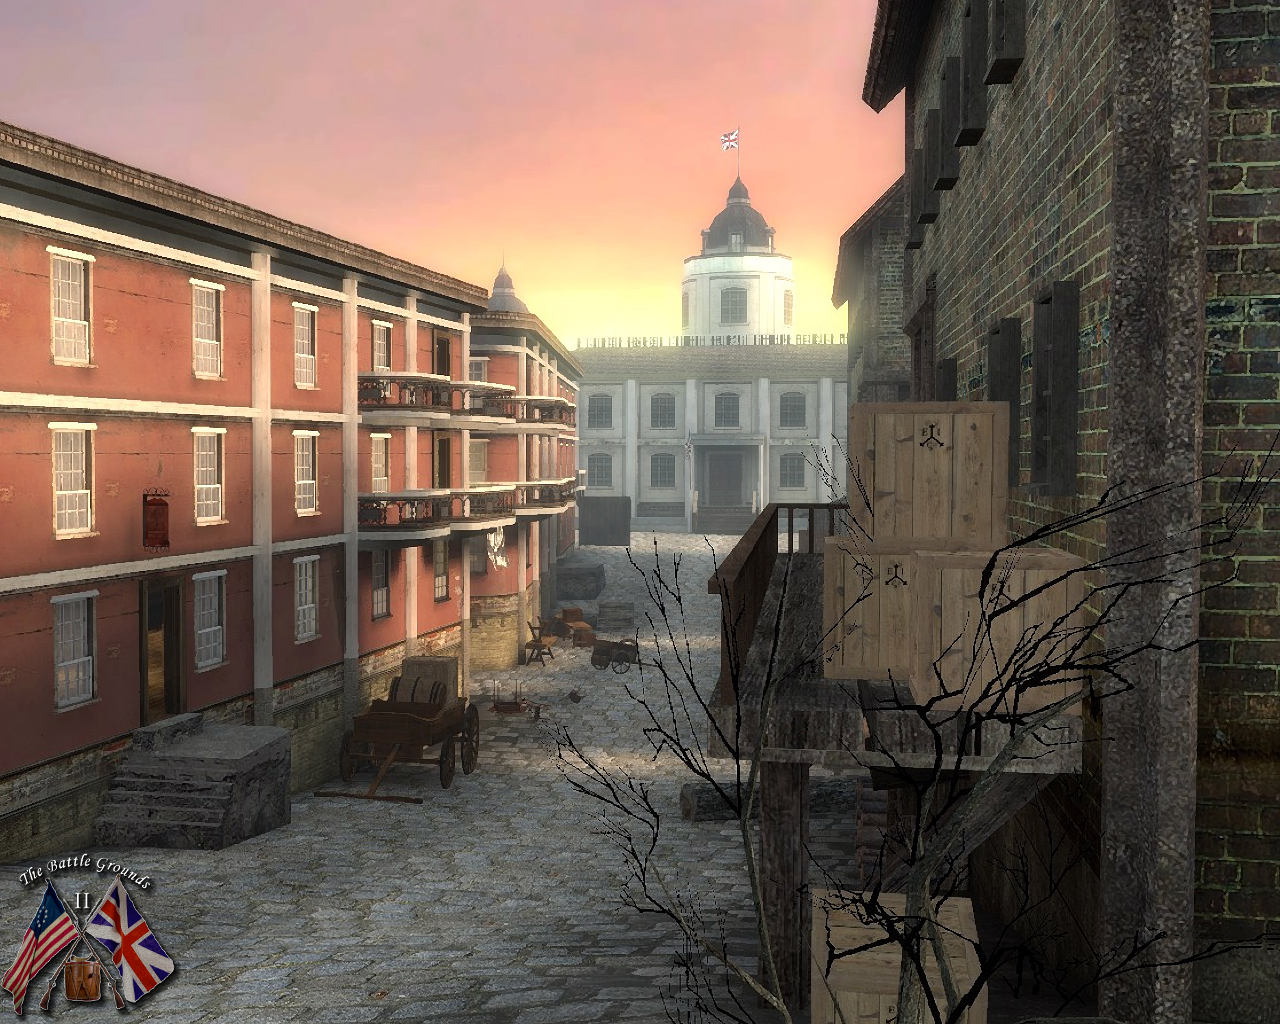 Screenshot from the upcoming new version of Battlegrounds 2 (planned release Oct 8 2011)